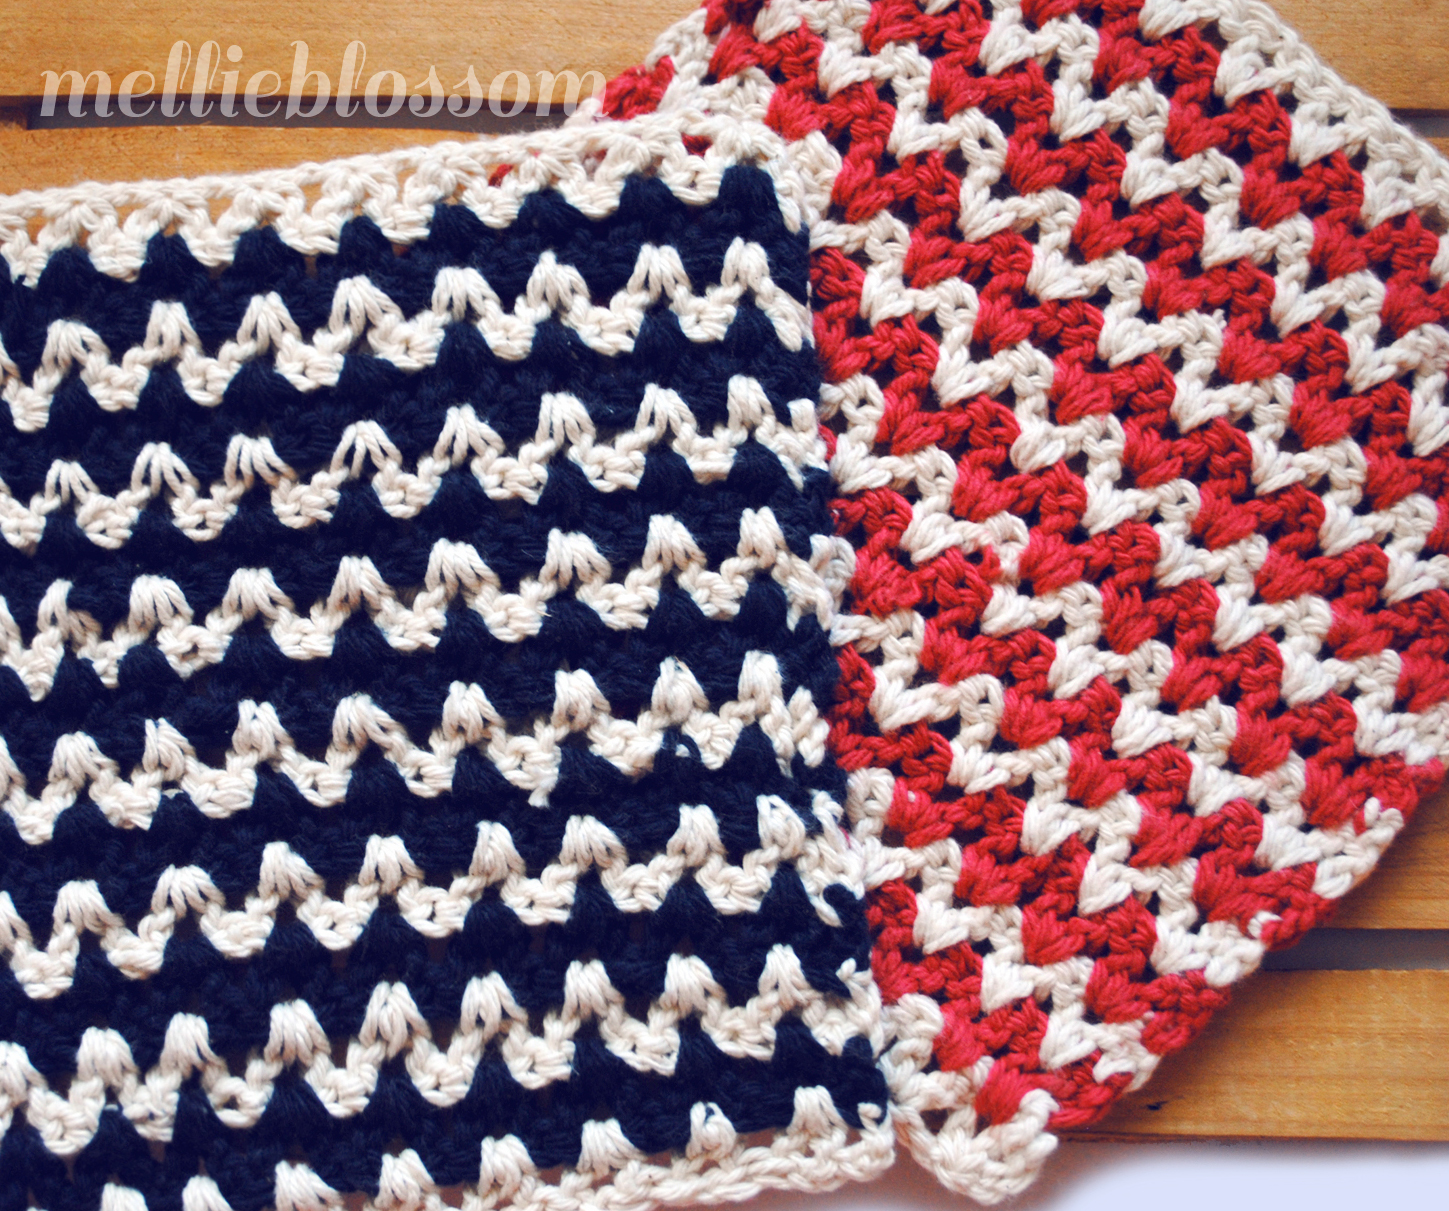 Crochet Patterns Zigzag : Free Crochet Dishcloth Pattern - ZigZag - mellie blossom